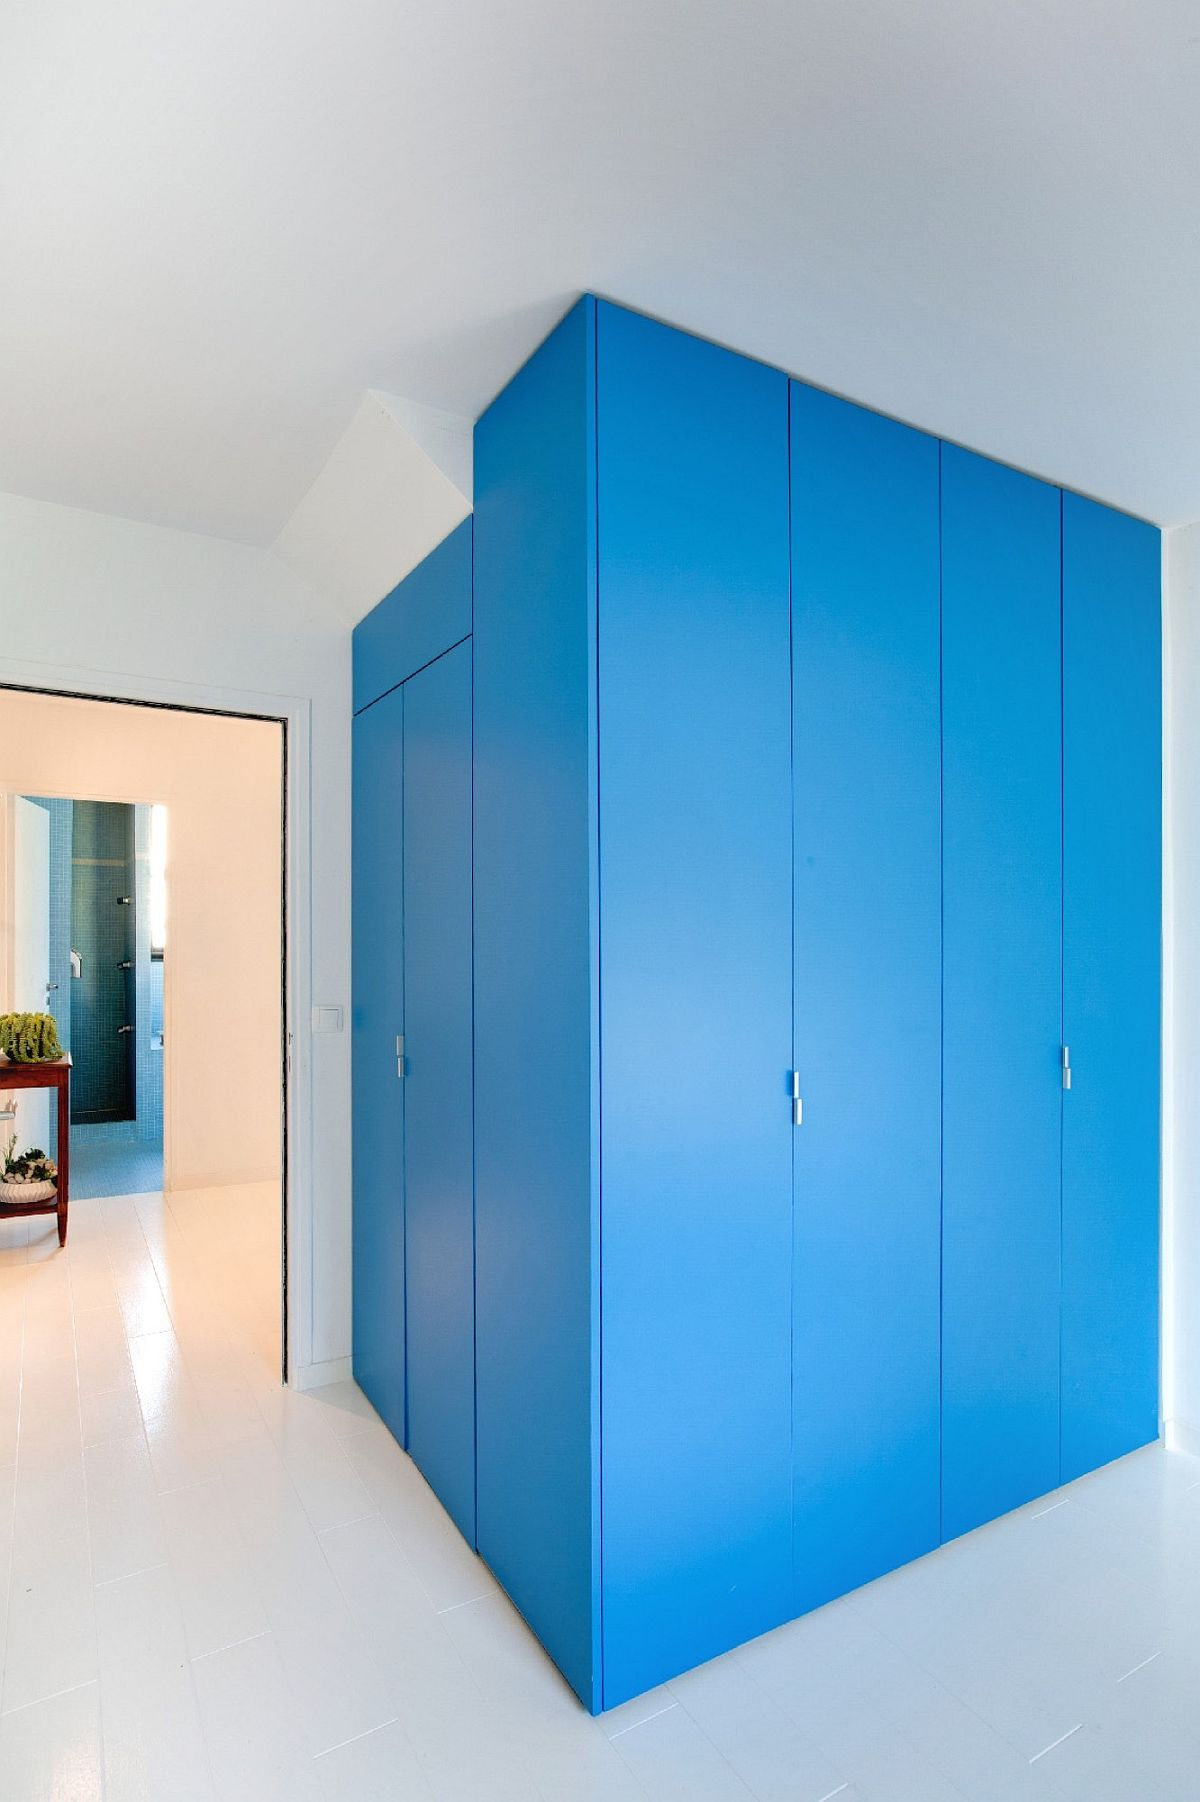 Custom units and smart rooms create a colorful and classy interior